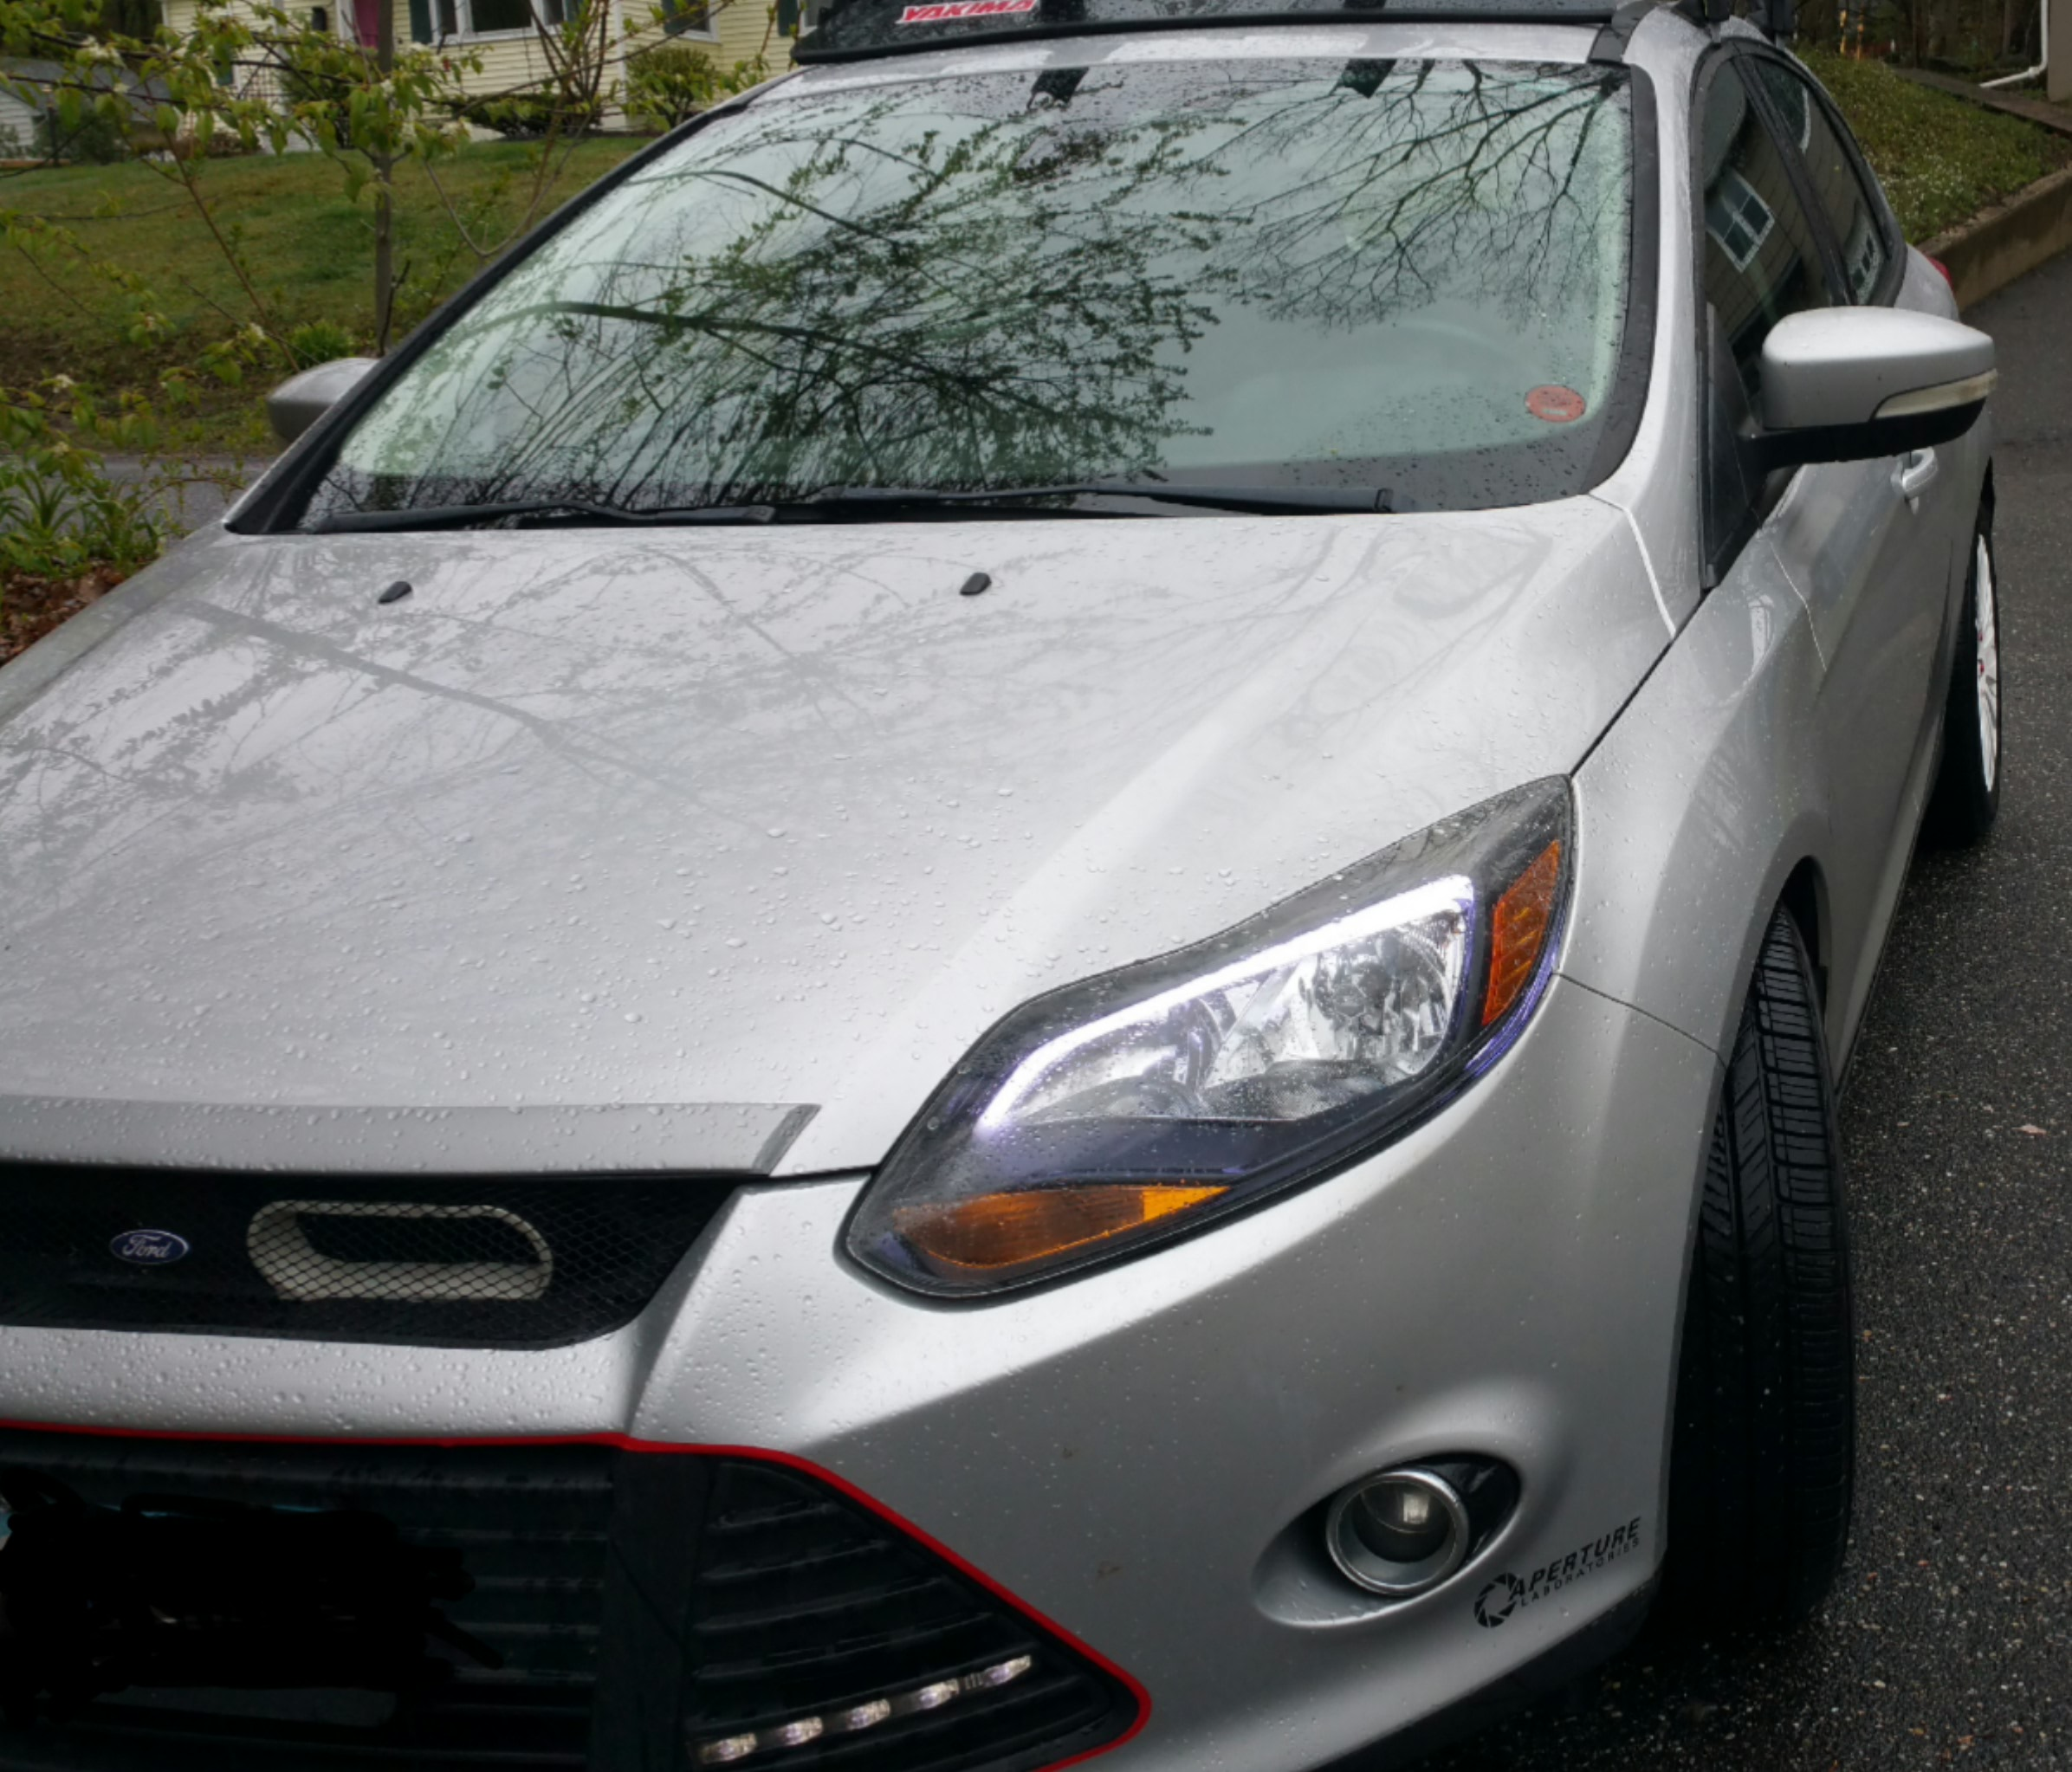 Ford Focus Forum Ford Focus: 2012+ Focus Aftermarket Parts & Mods Info Thread.